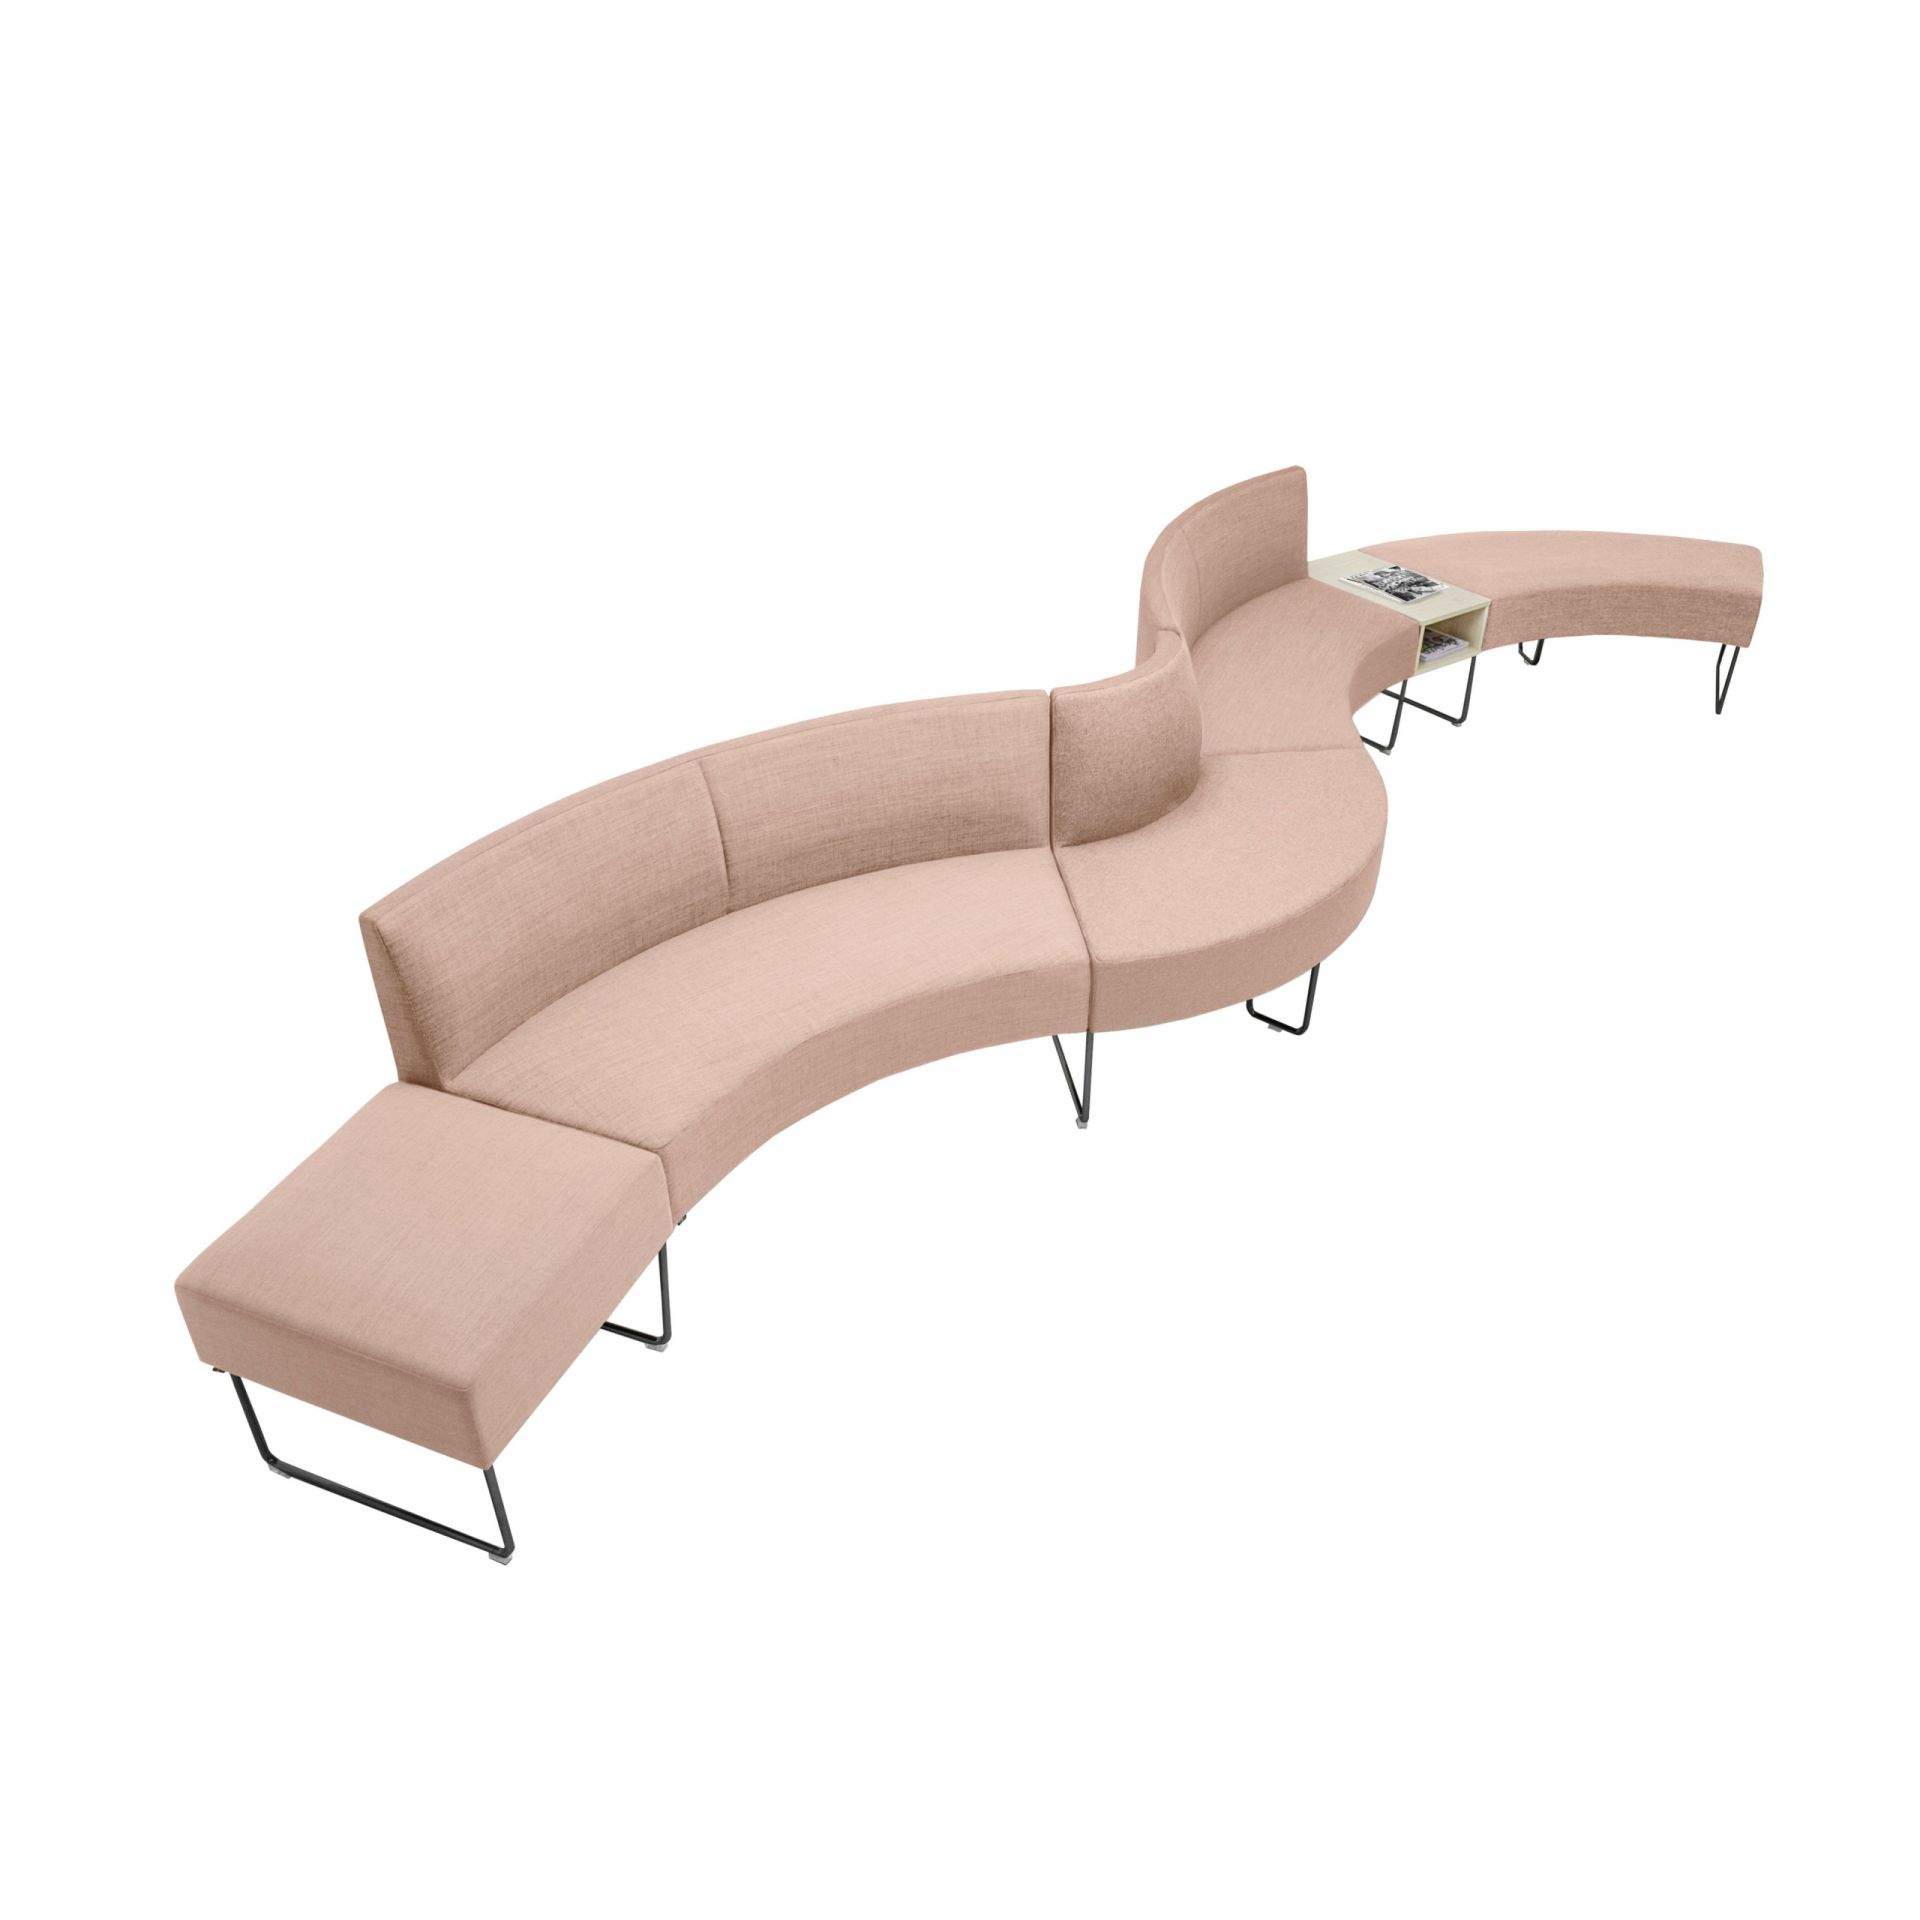 Mingle Buildable seating modules product image 5